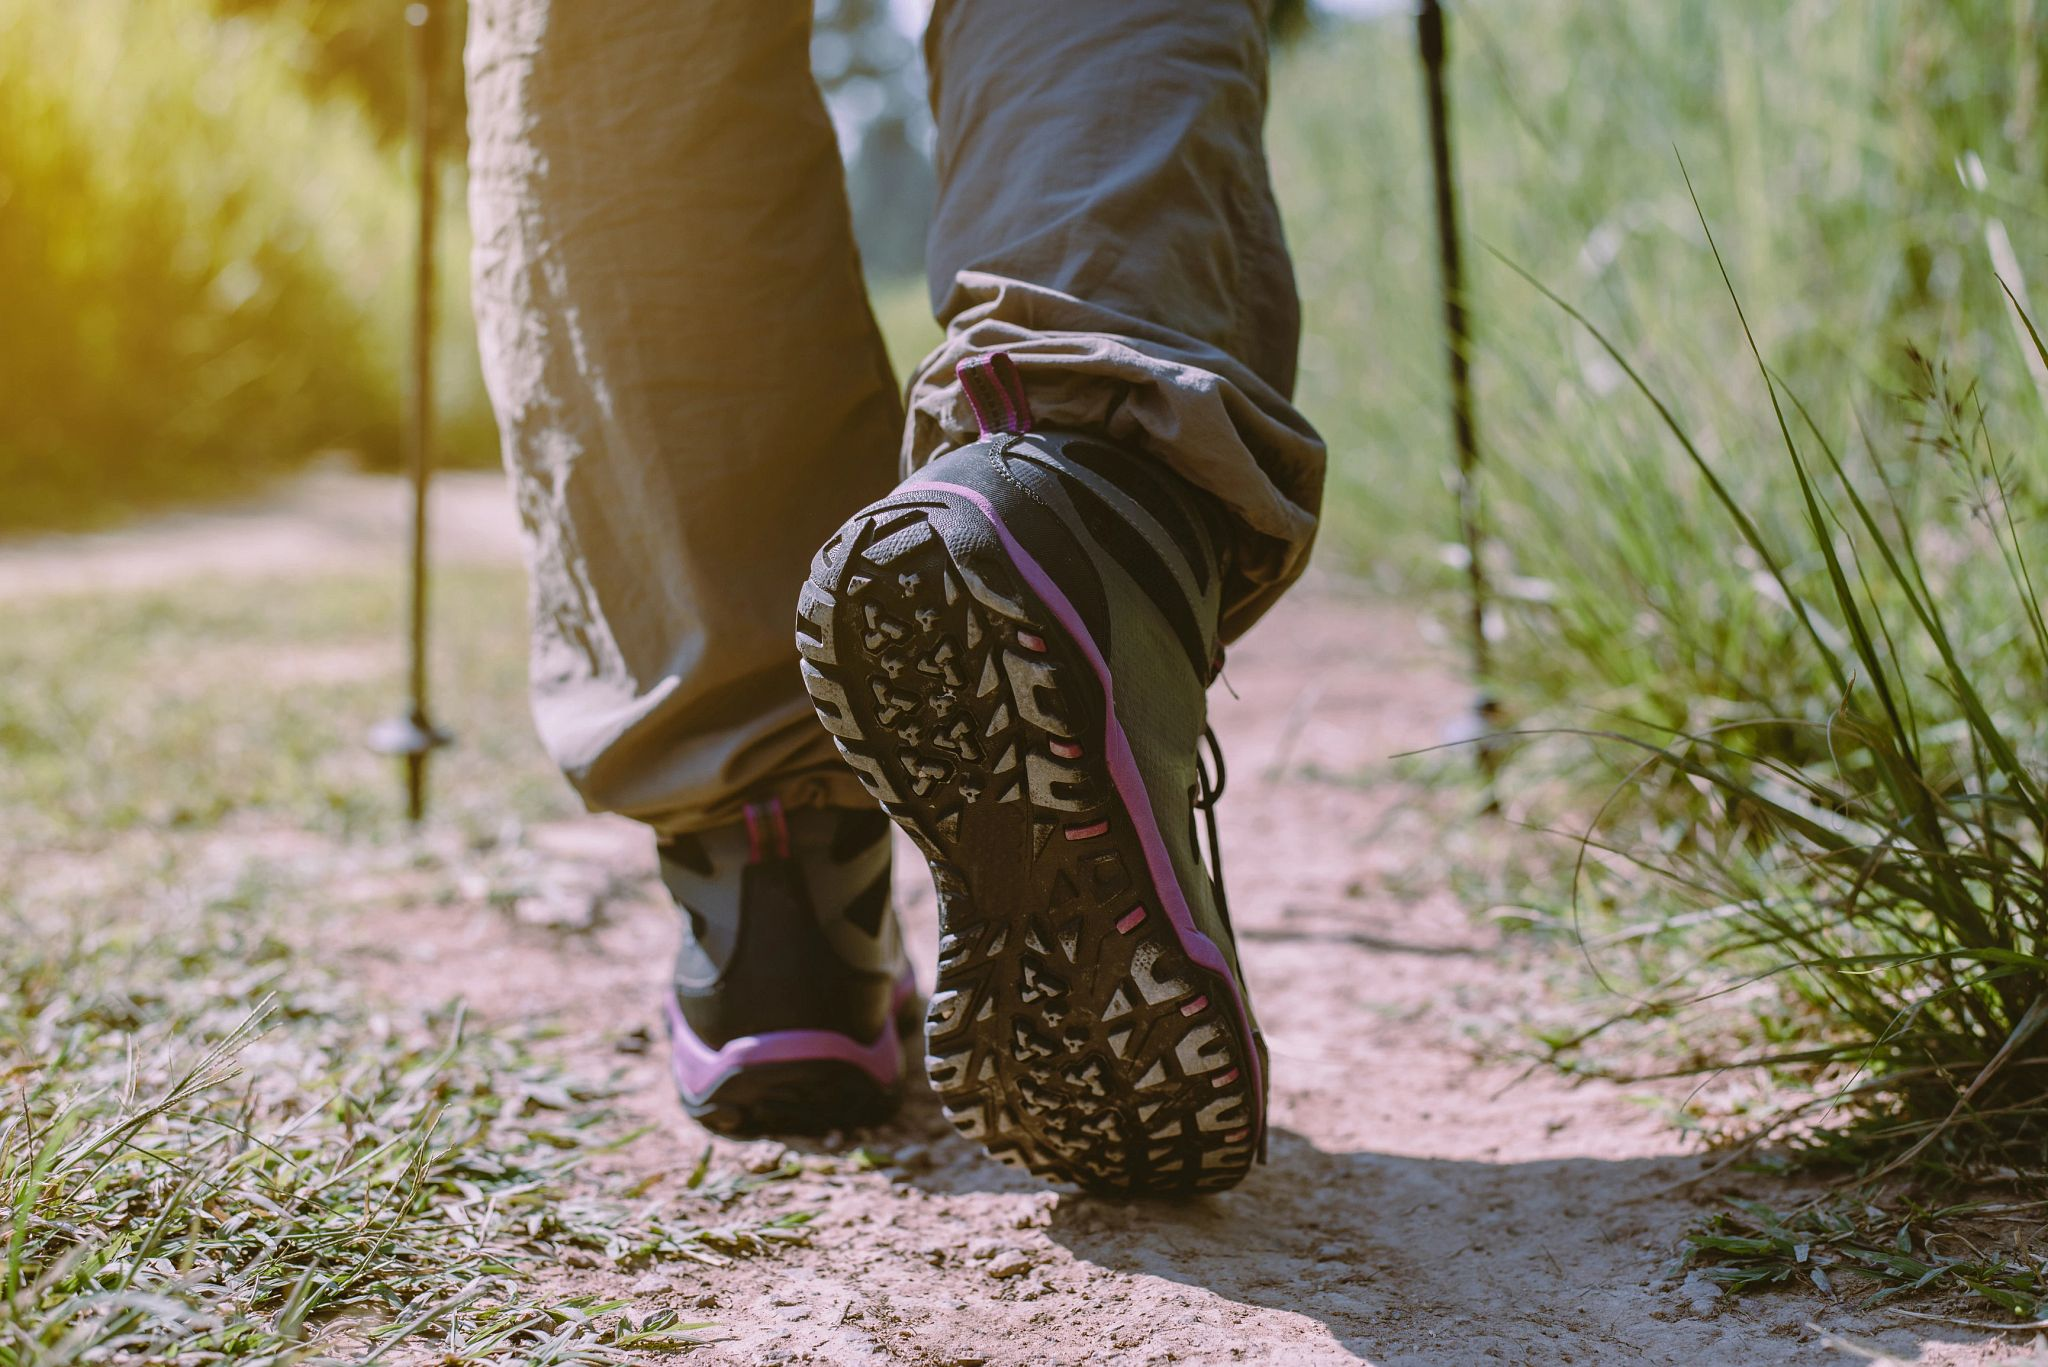 An close-up image of a person's shoes while hiking a trail.